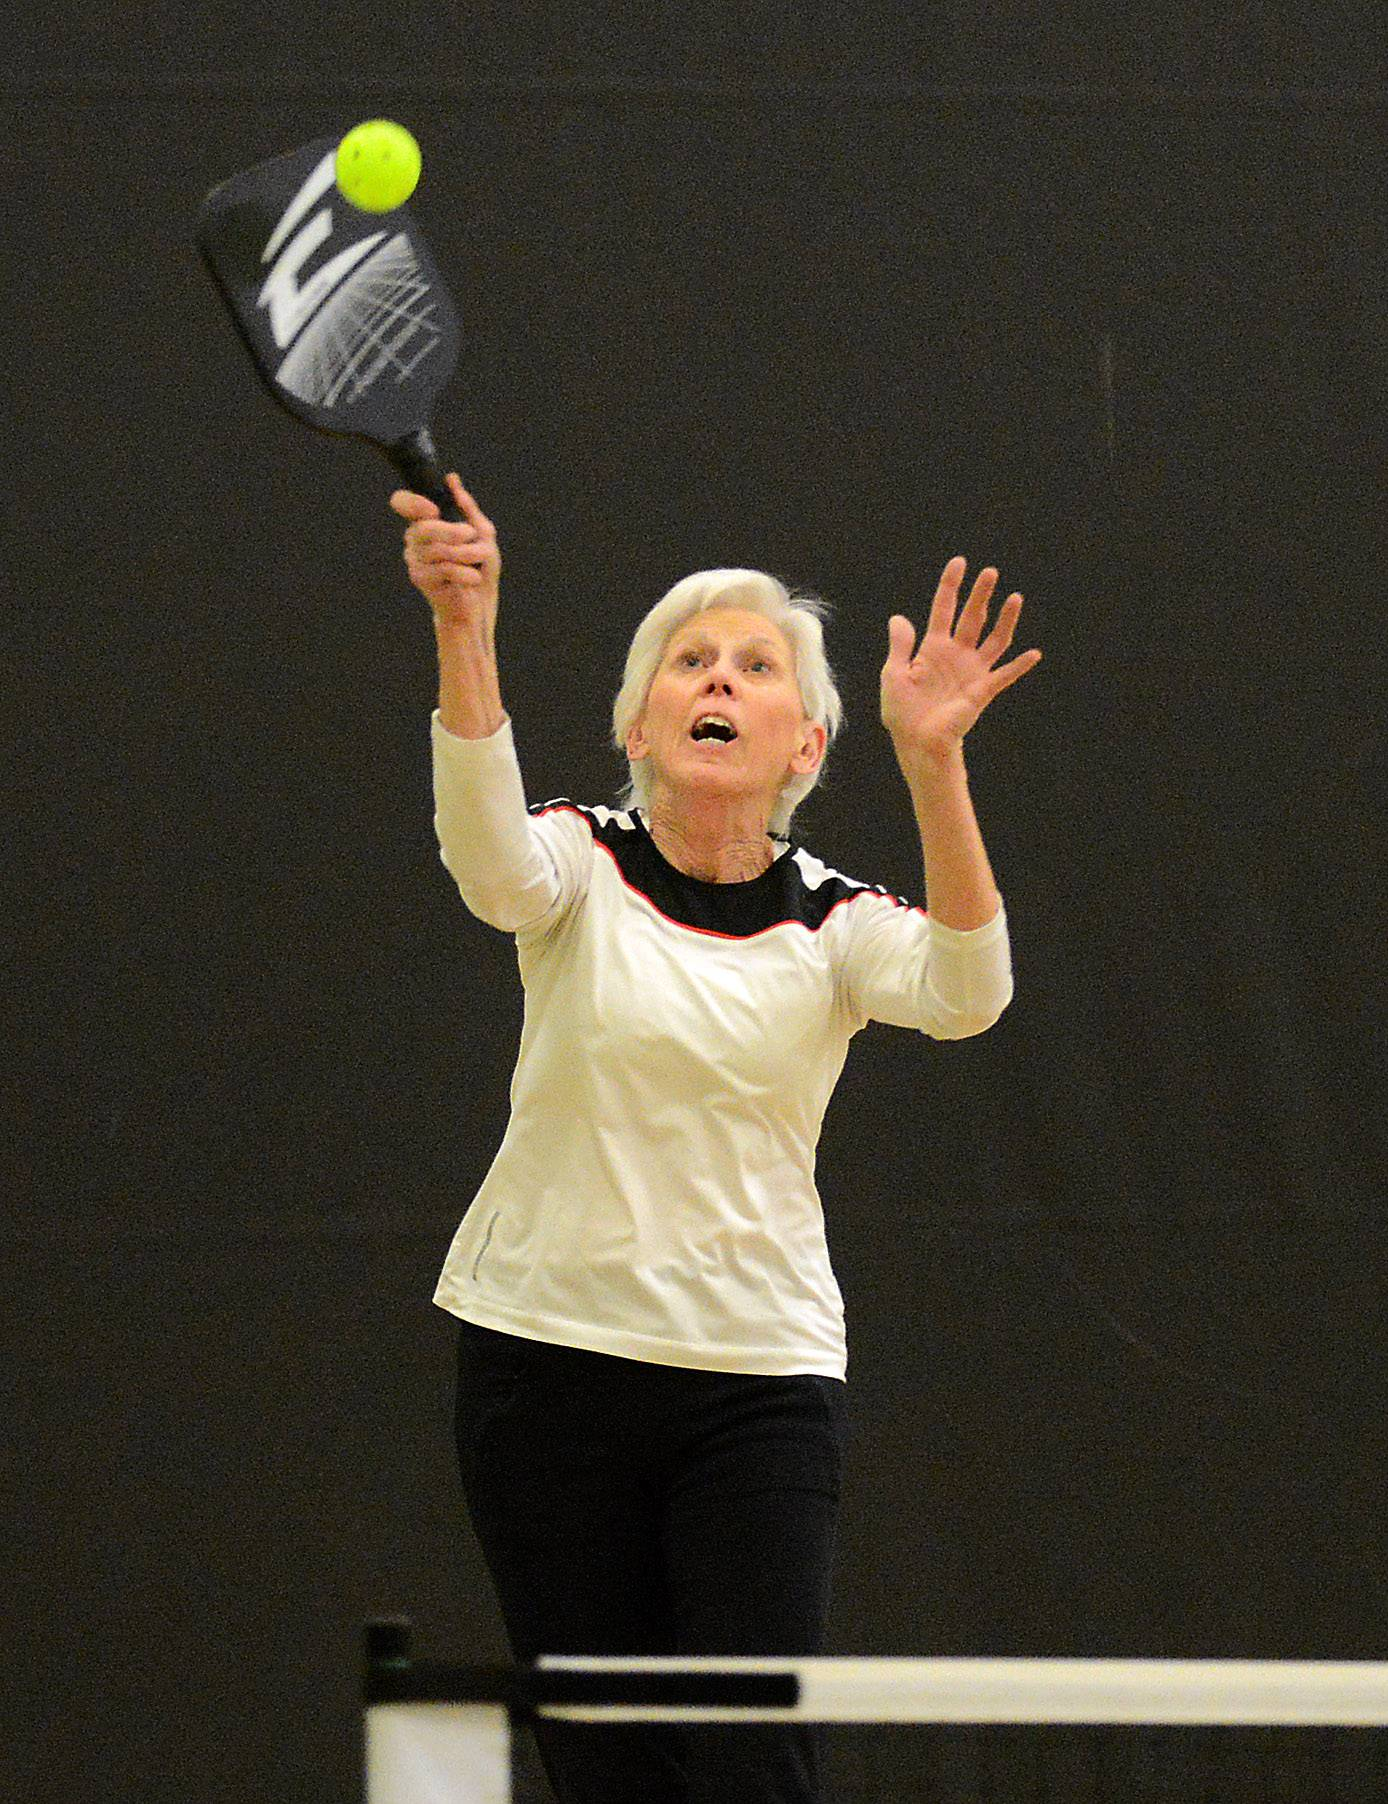 Rick West/rwest@dailyherald.comChris Bolliger, of St. Charles, hits an overhead smash while playing pickleball at Pottawatomie Community Center in St. Charles Thursday. She said she picked up the game about 6 months ago.